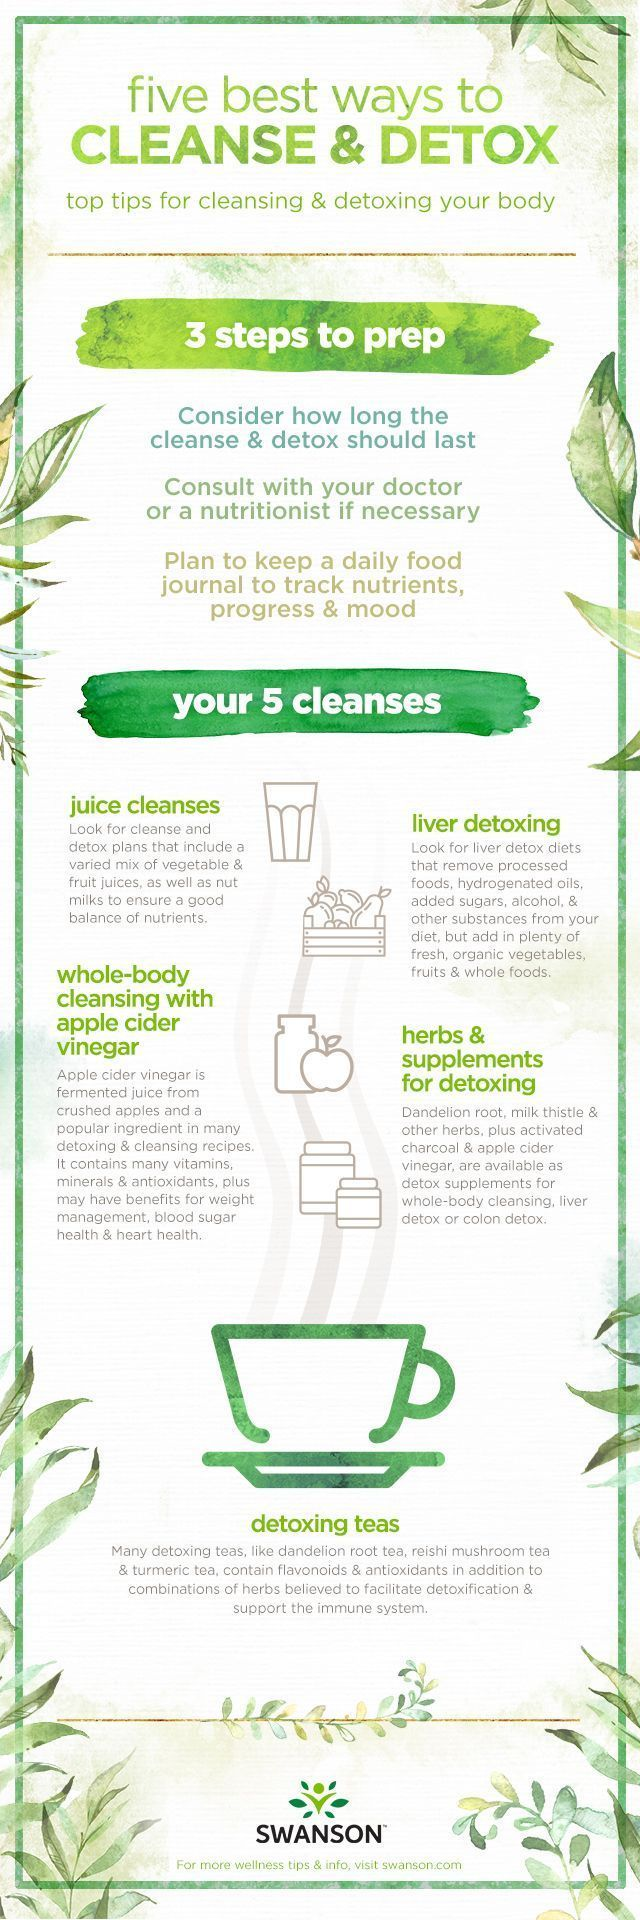 Best Ways to Cleanse and Detox, 5 ways plus tips on how to detox  The best ways to cleanse & detox your whole body. Learn everything you need to know about juice cleanses, liver detoxing, detox teas, apple cider vinegar cleansing, and which herbs & supplements are best for detoxing. #BestWholeBodyCleanseAndDetox #LiverDetoxSupplements